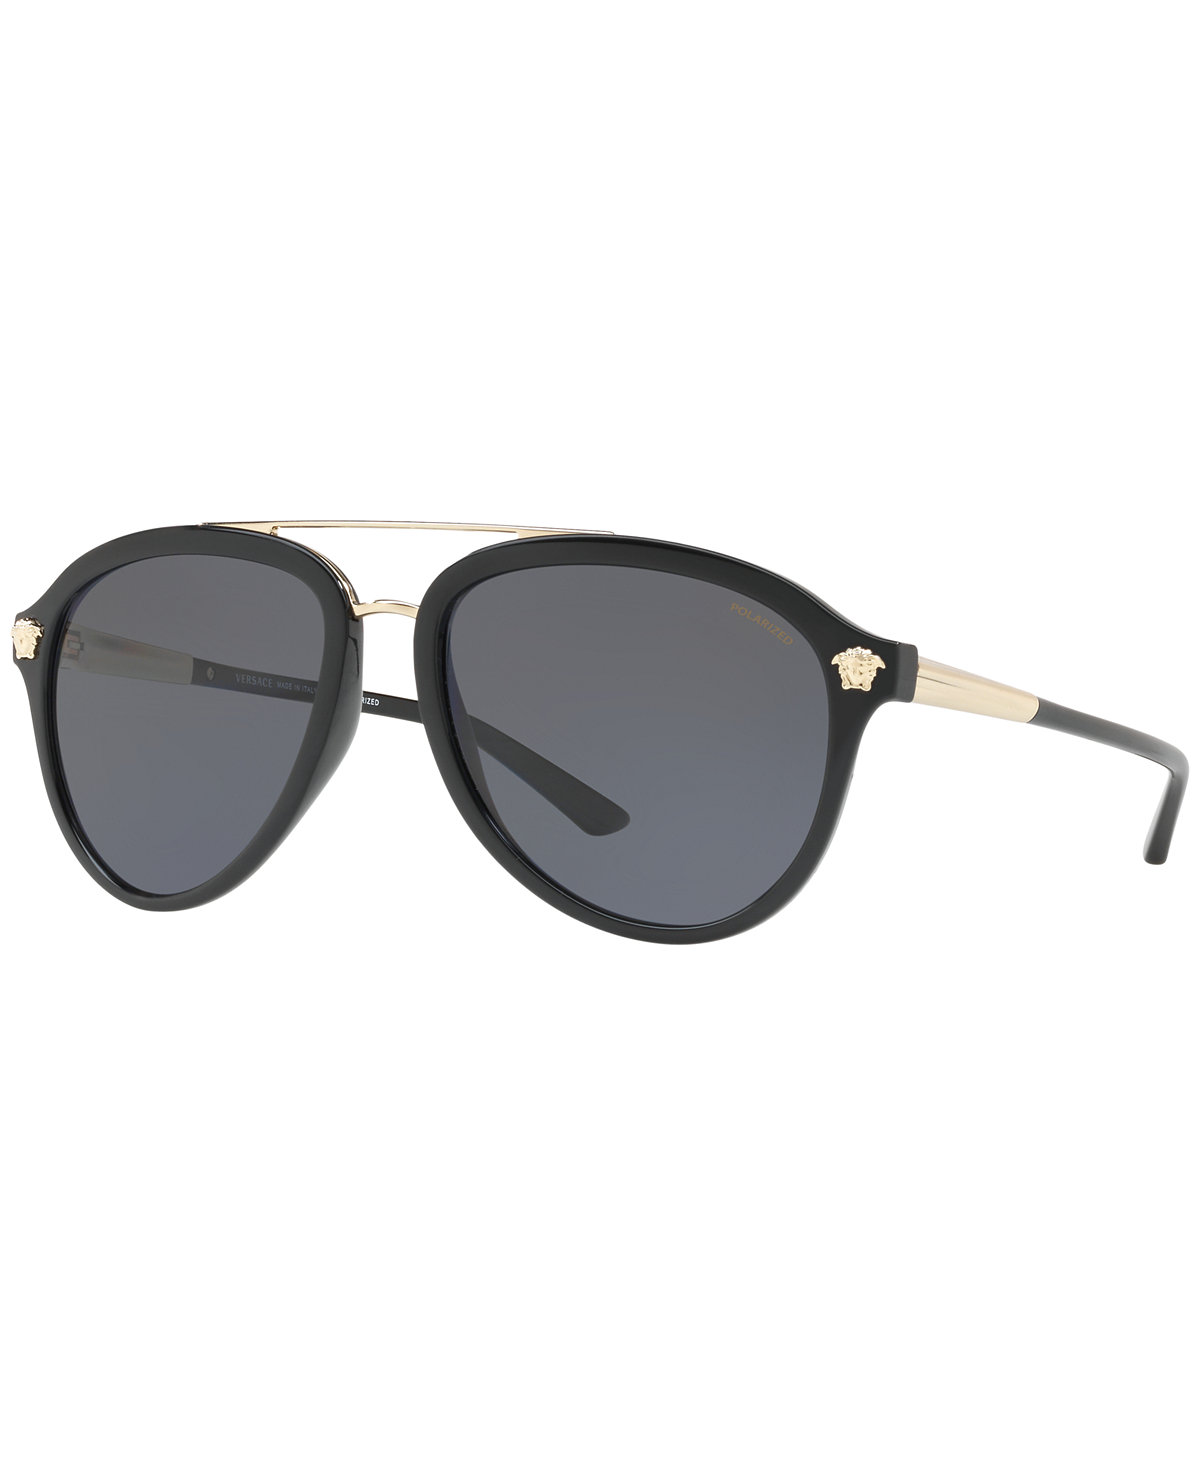 406fb2c531 Replica Versace VE4341 Polarized Sunglasses